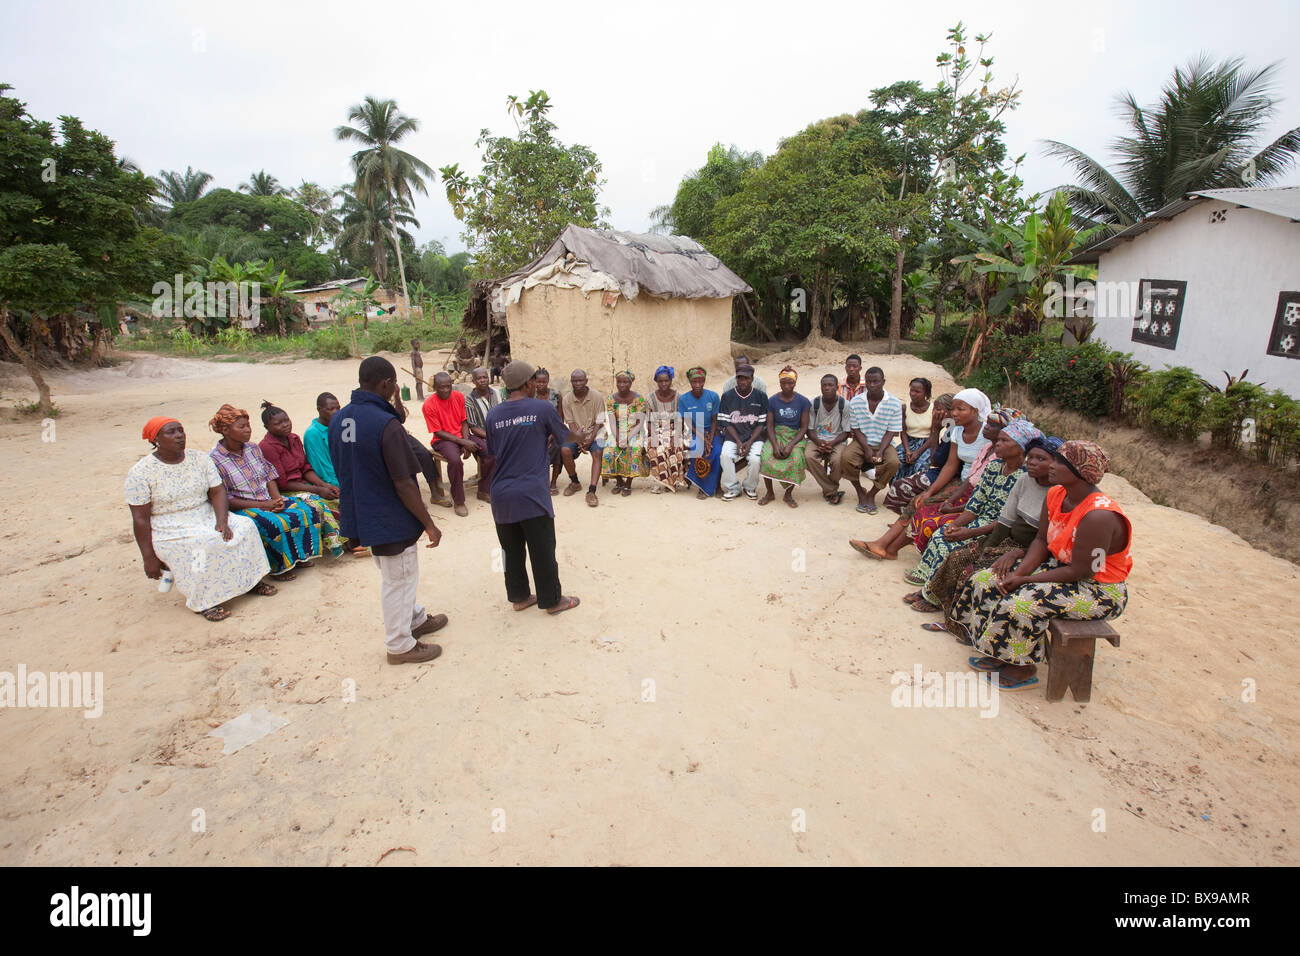 Villagers attend a community meeting in the town of Kakata, Liberia, West Africa. - Stock Image